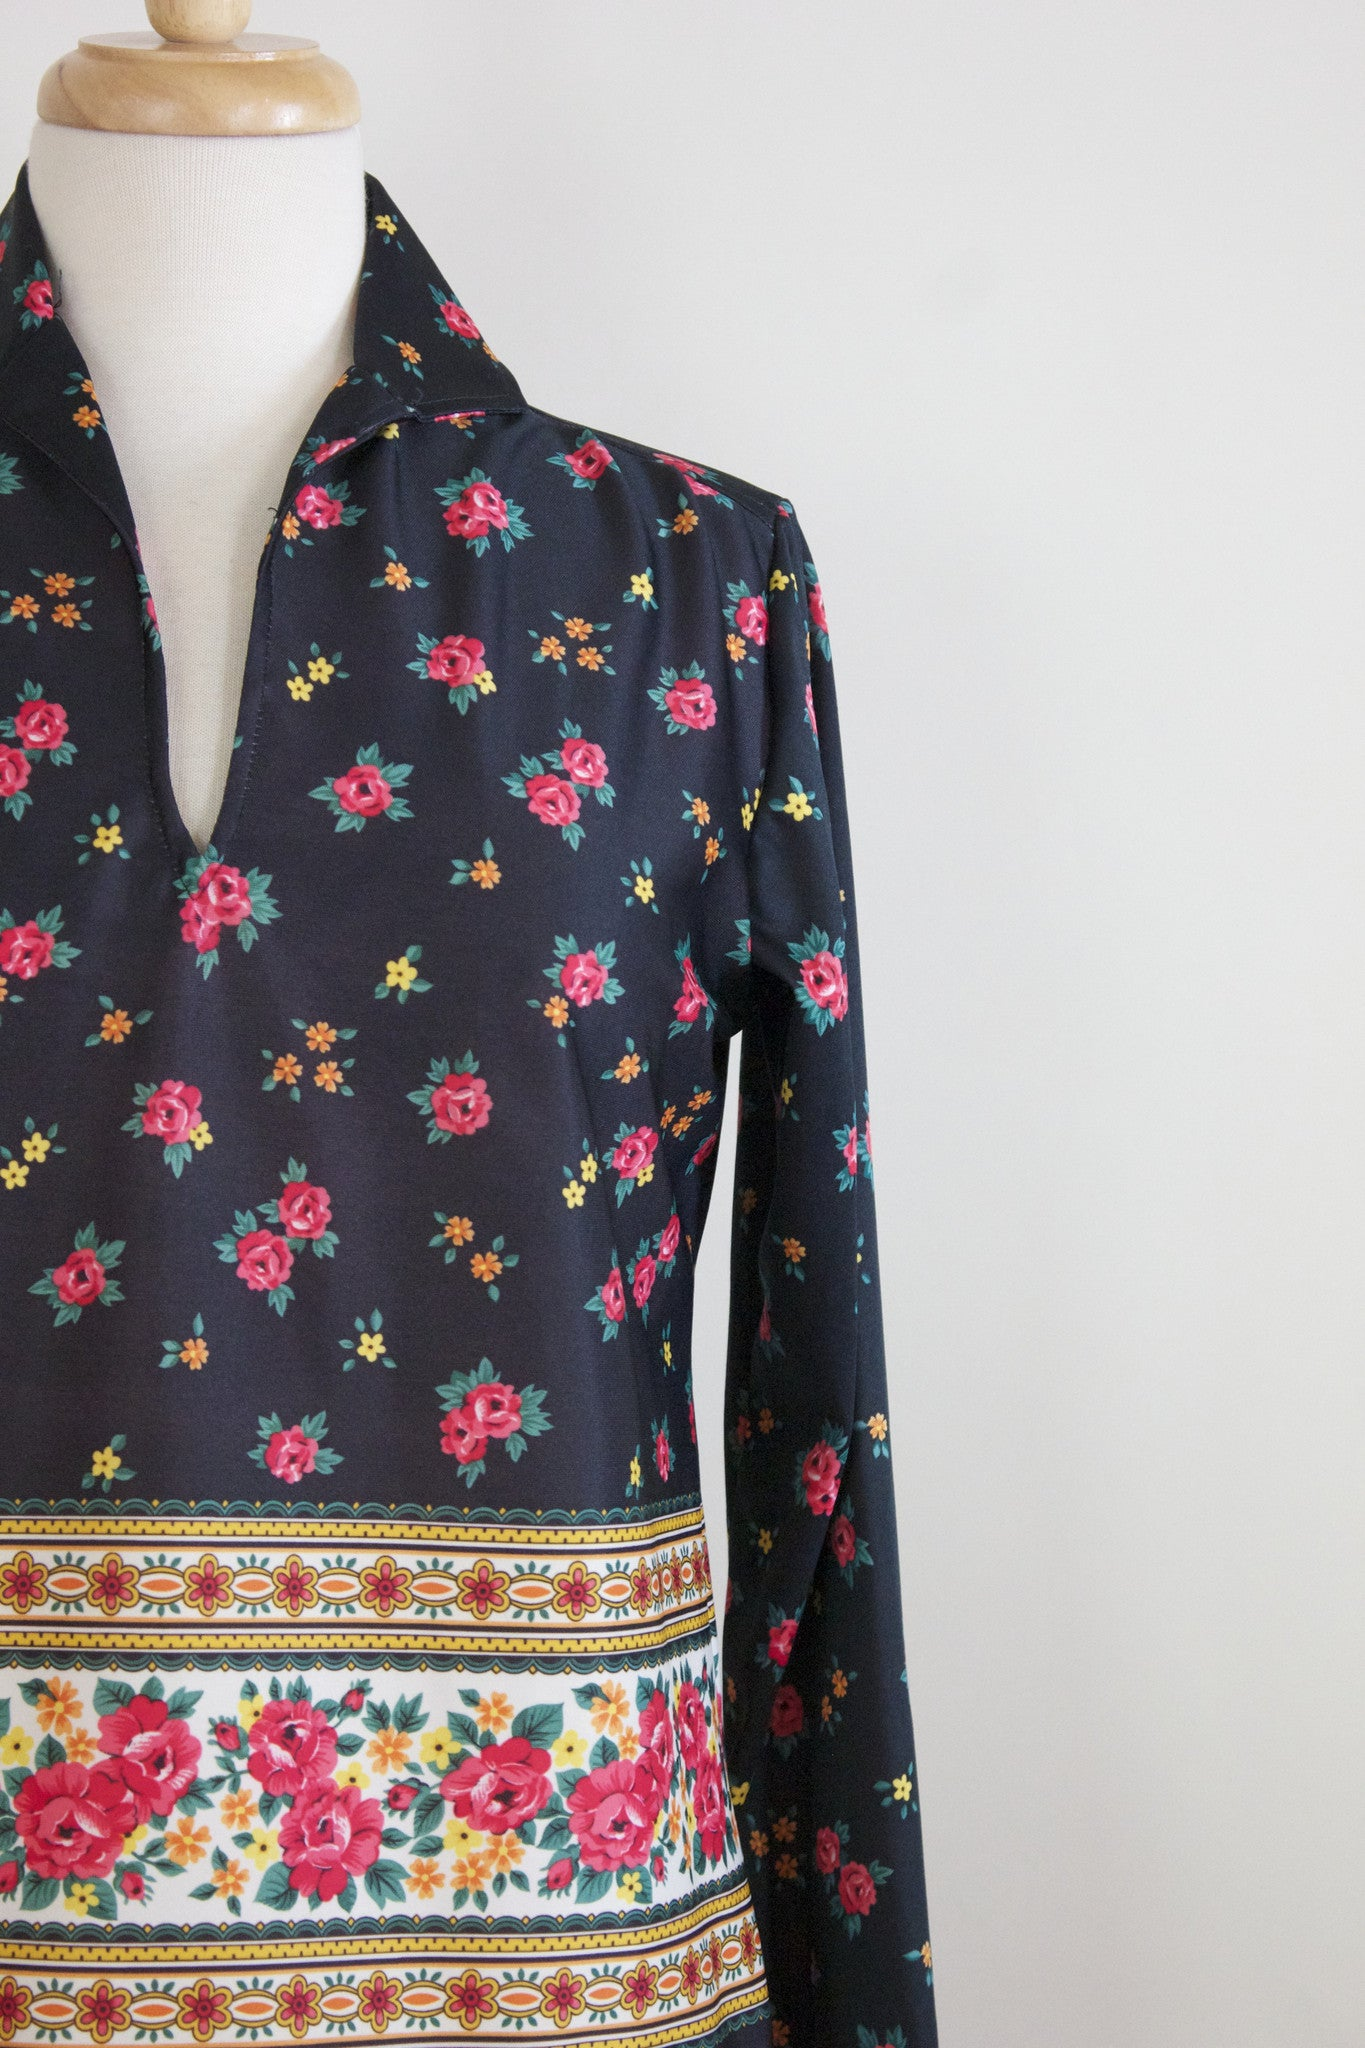 60s Polyester Top